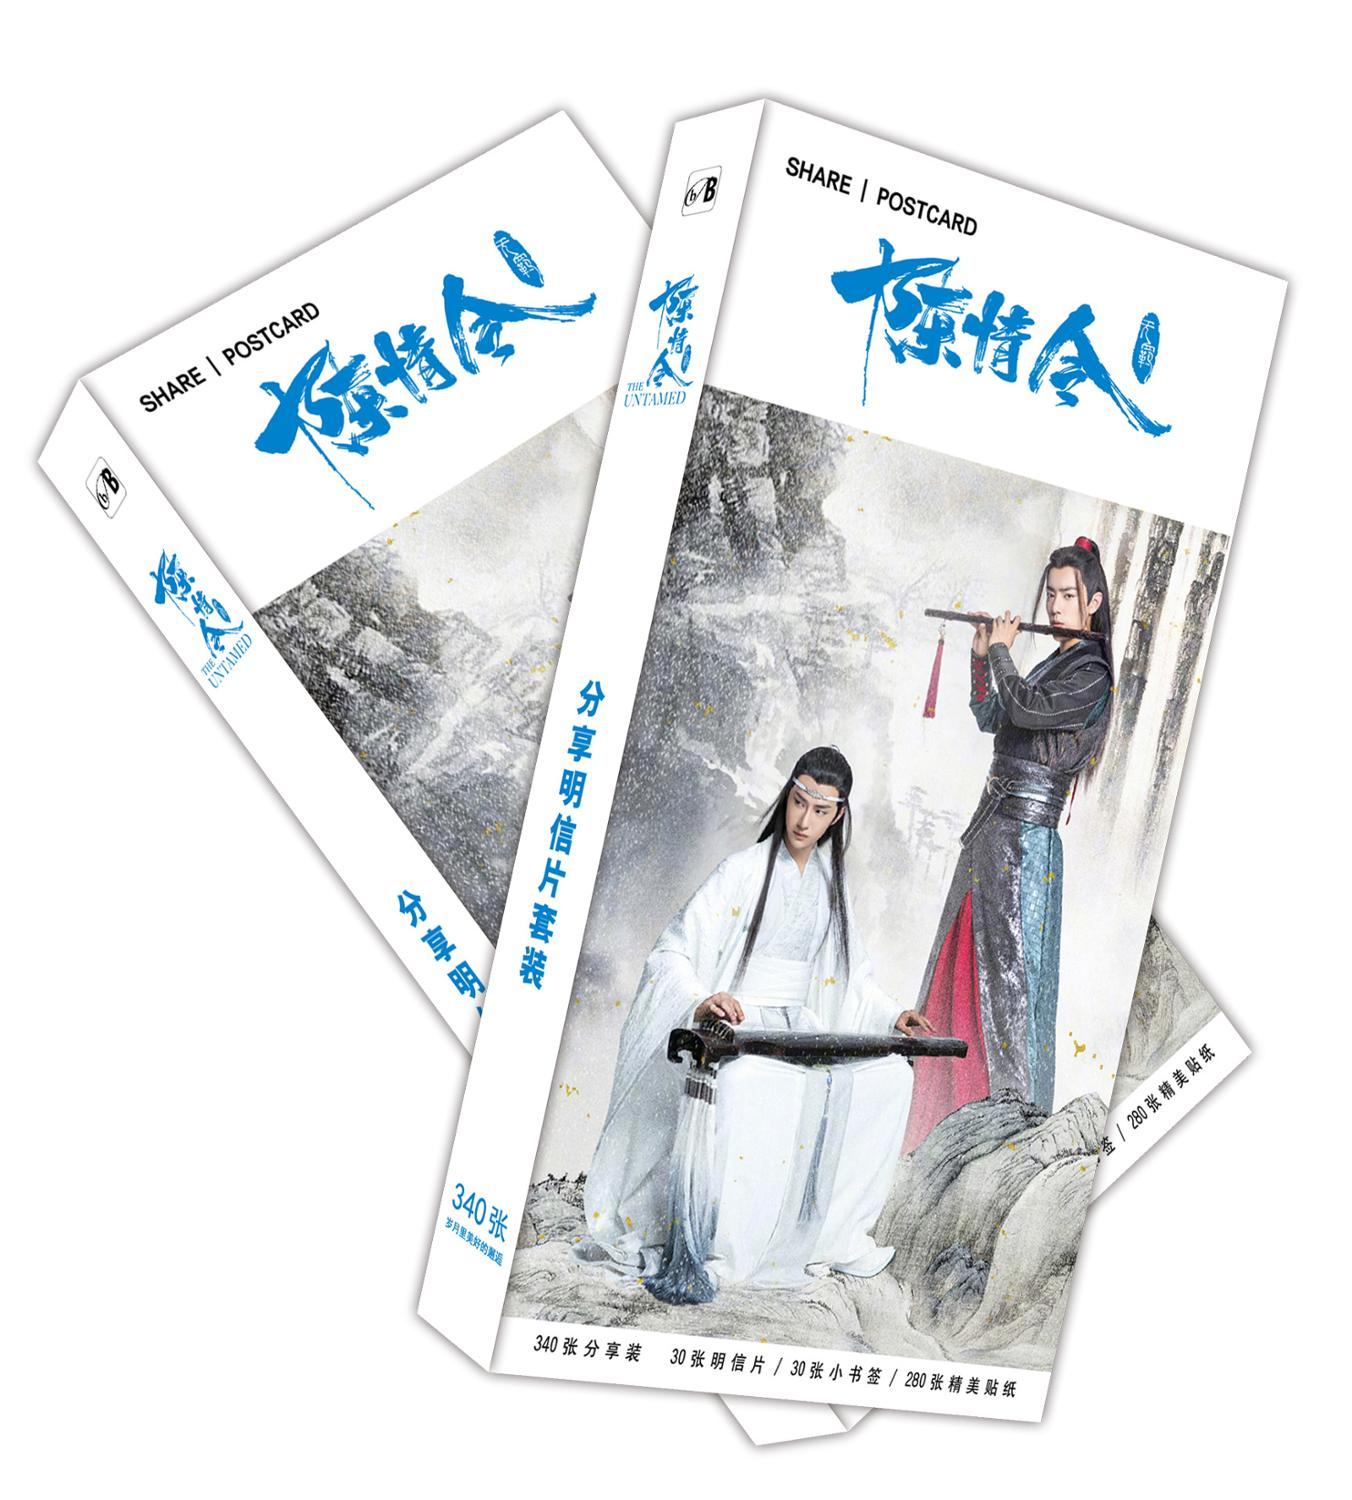 900 Pcs/Set Chen Qing Ling The Untamed Large Postcard Greeting Card Birthday Letter Gift Card Message Card